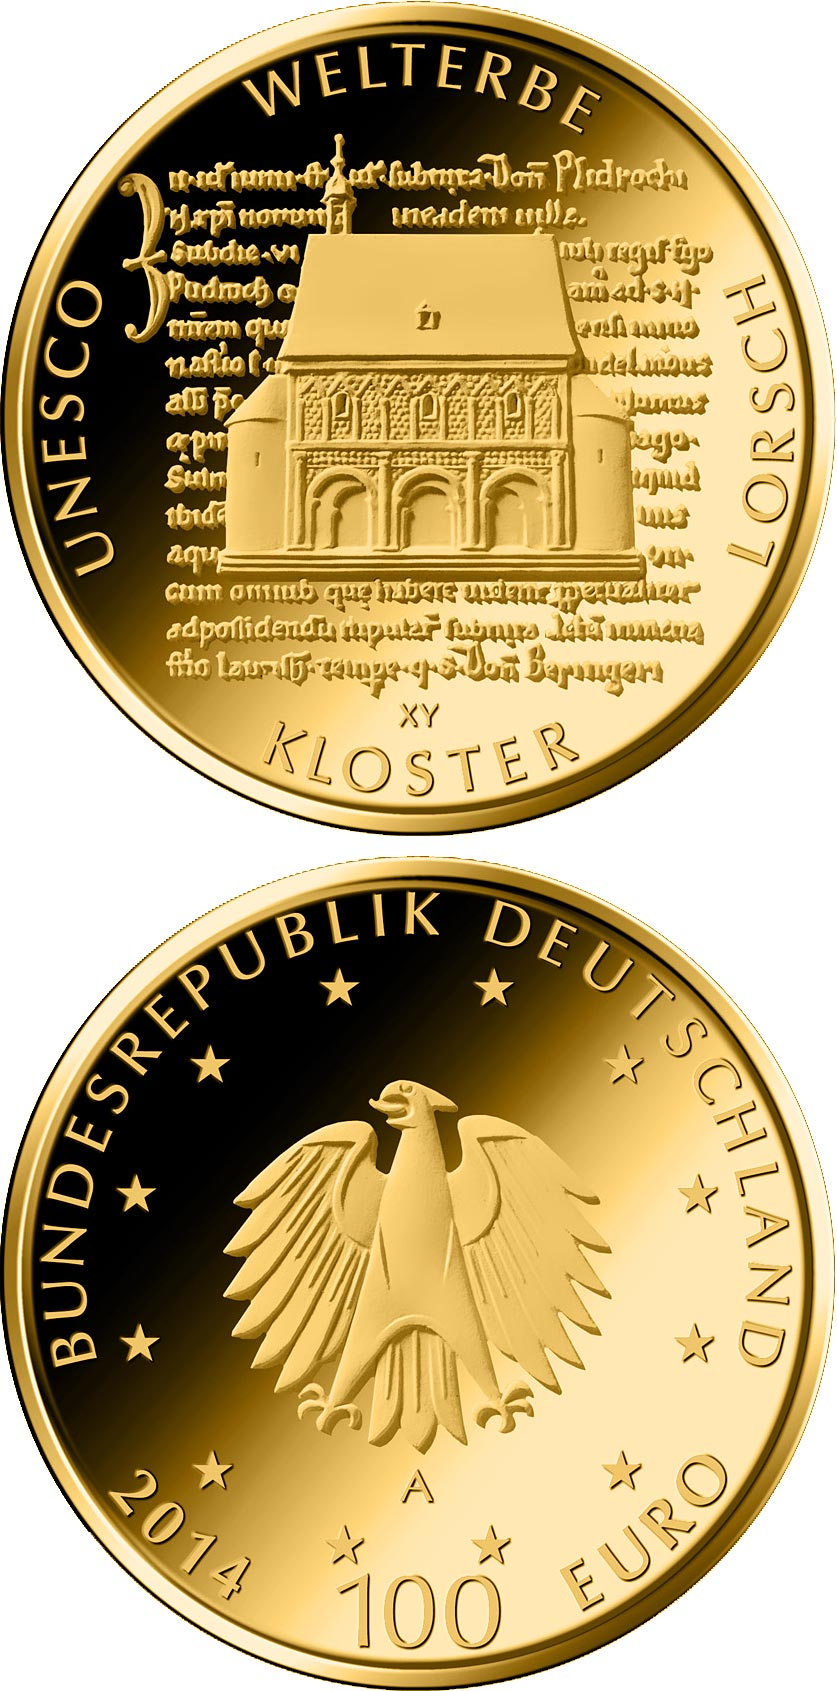 100 euro UNESCO Welterbe - Kloster Lorsch - 2014 - Series: Gold 100 euro coins - Germany